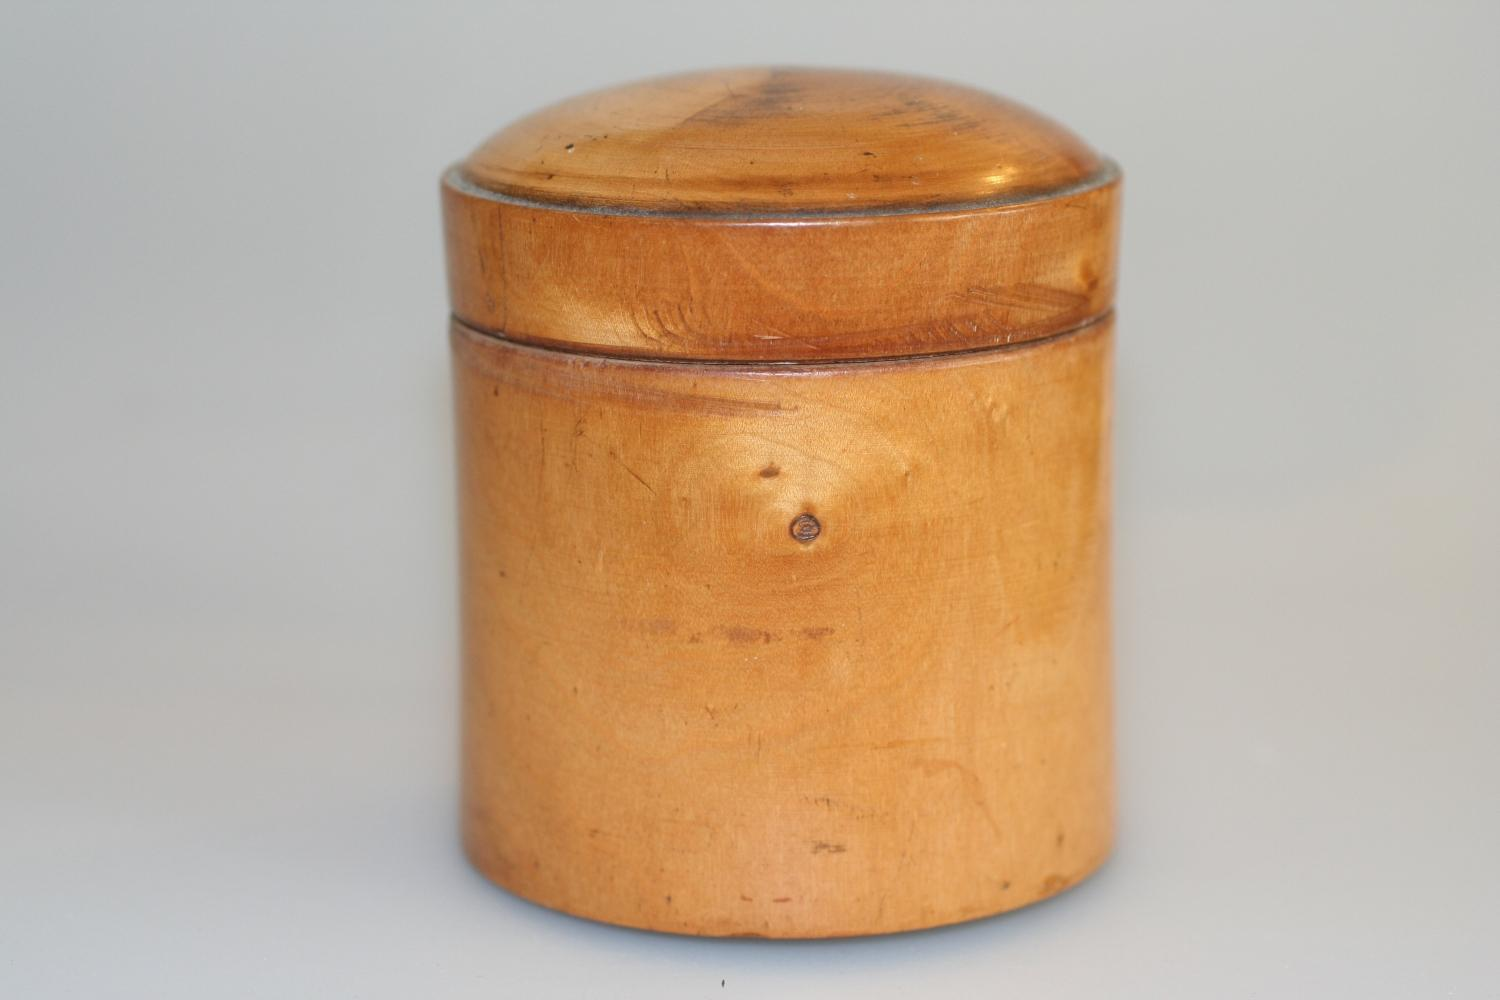 Treen - Early 20th C. Trinket Box